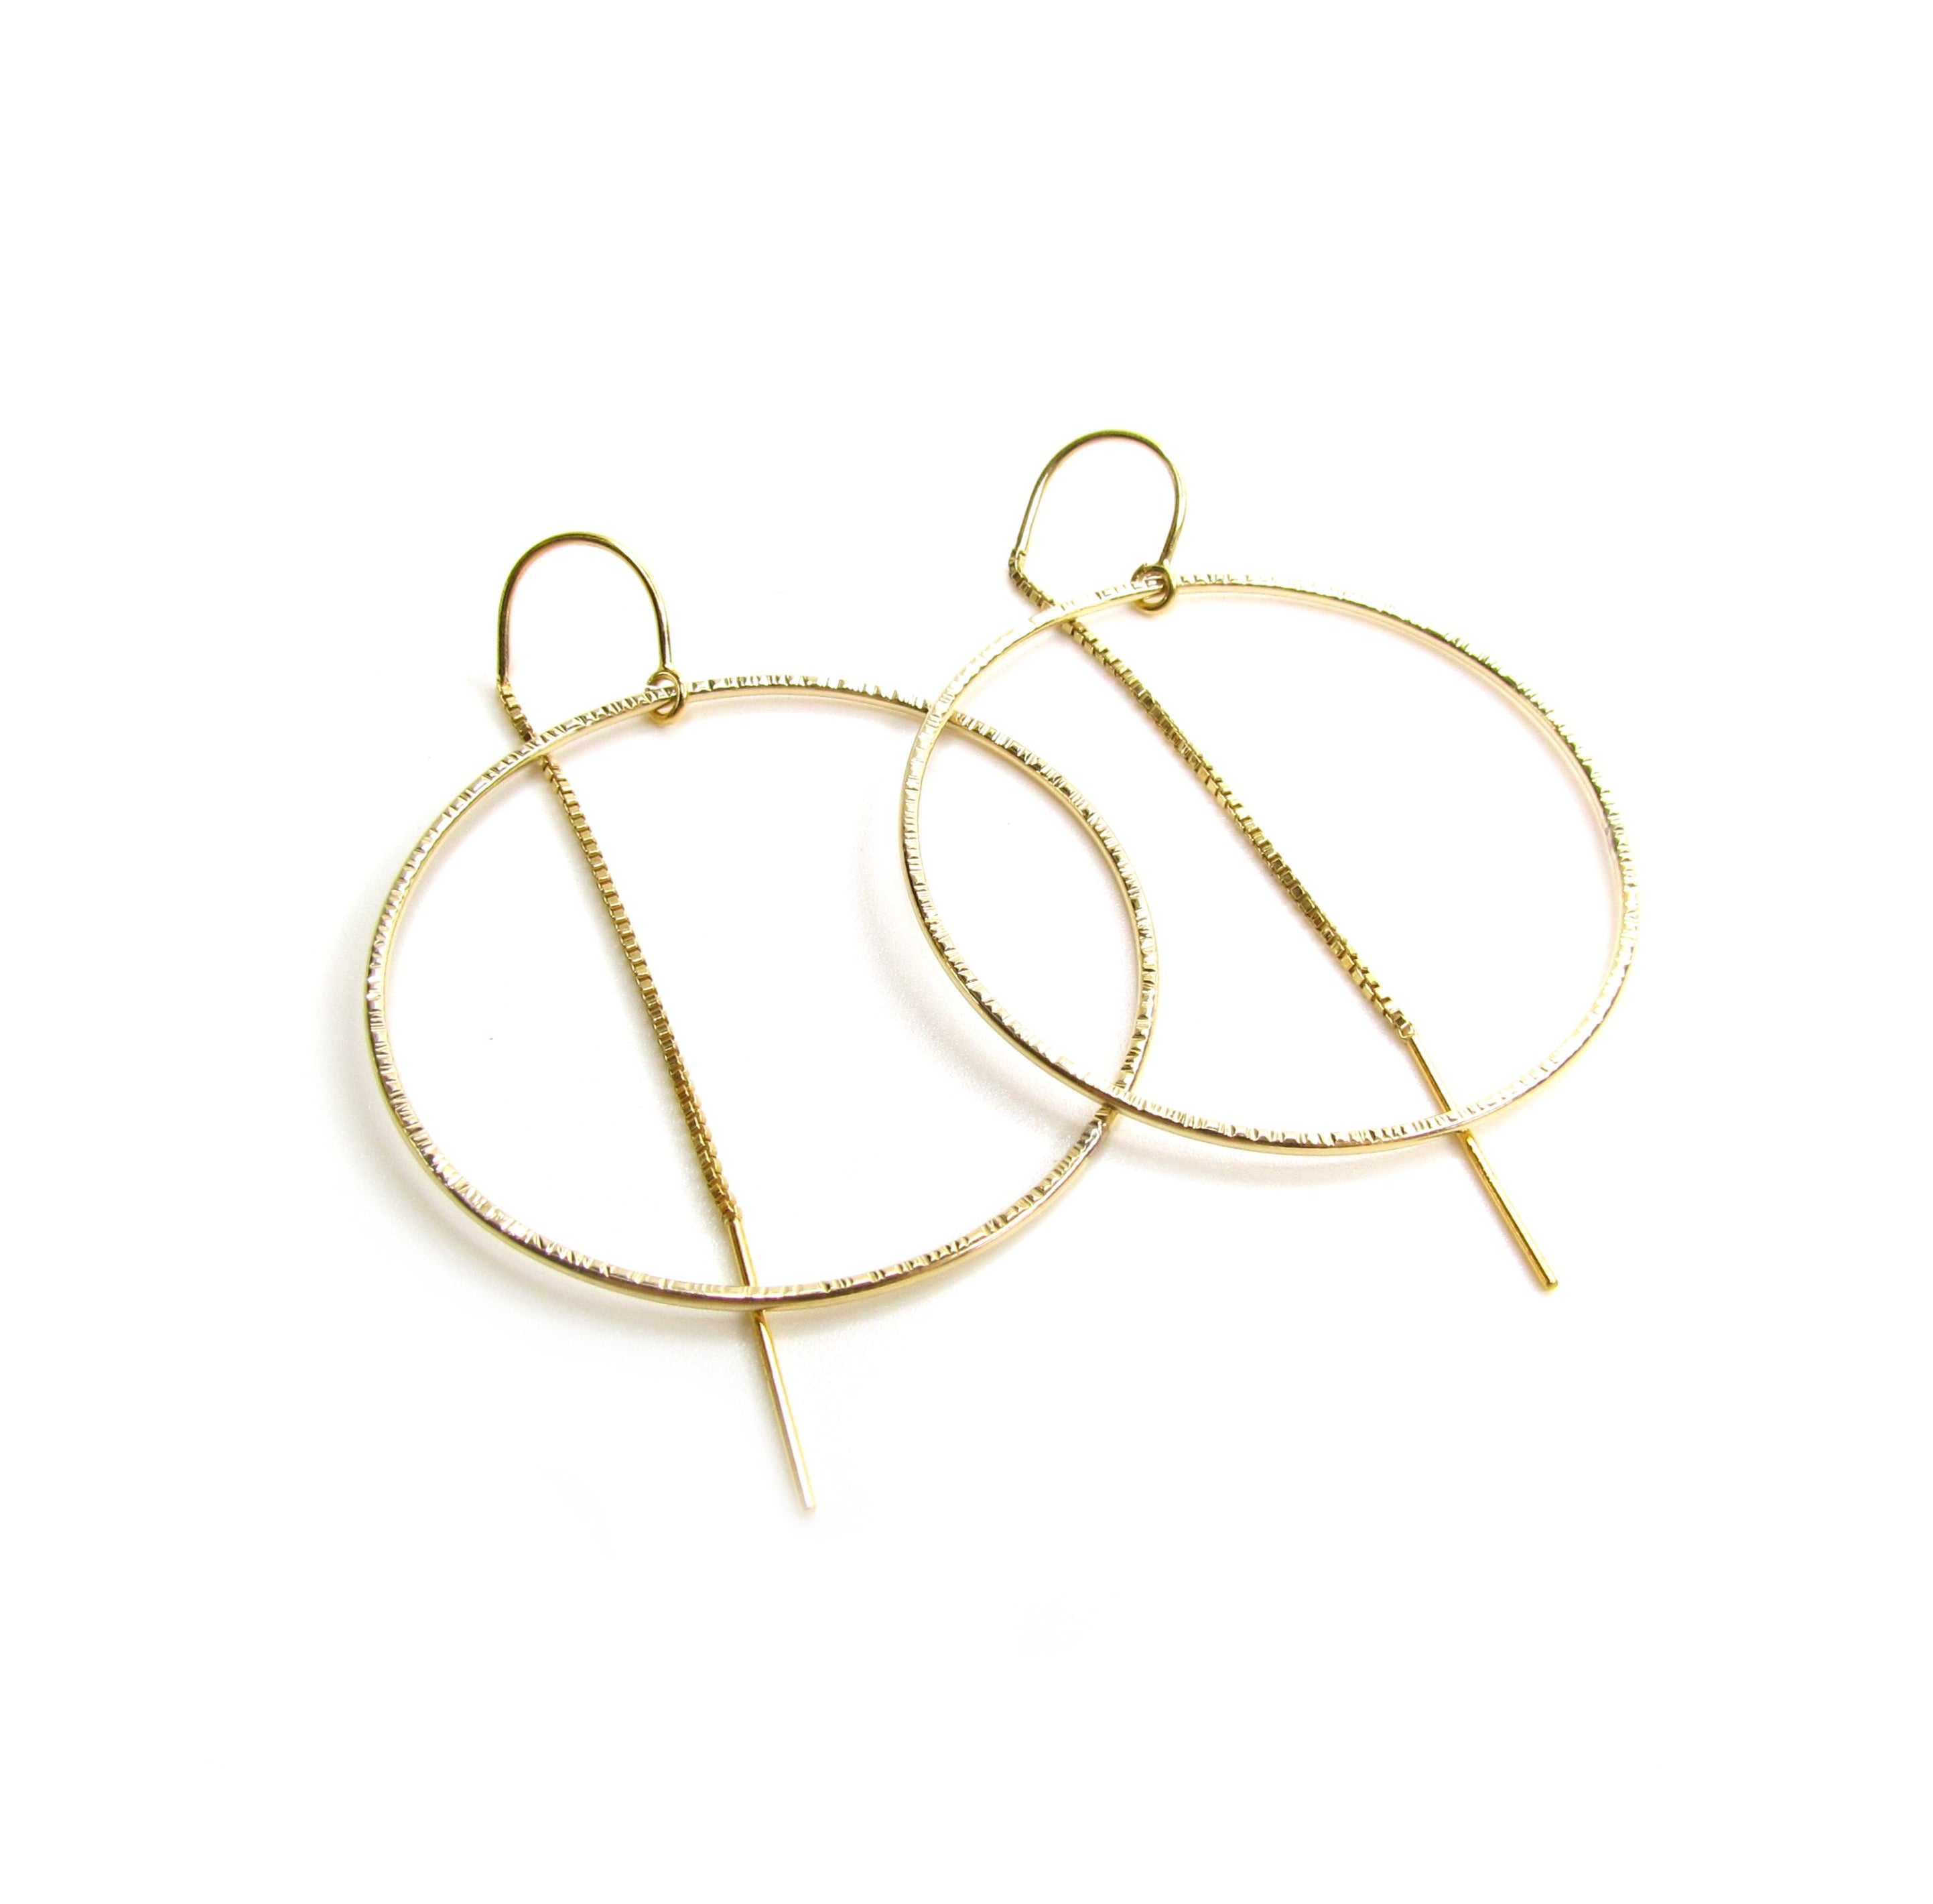 Textured Circle Hoop Threader Earrings